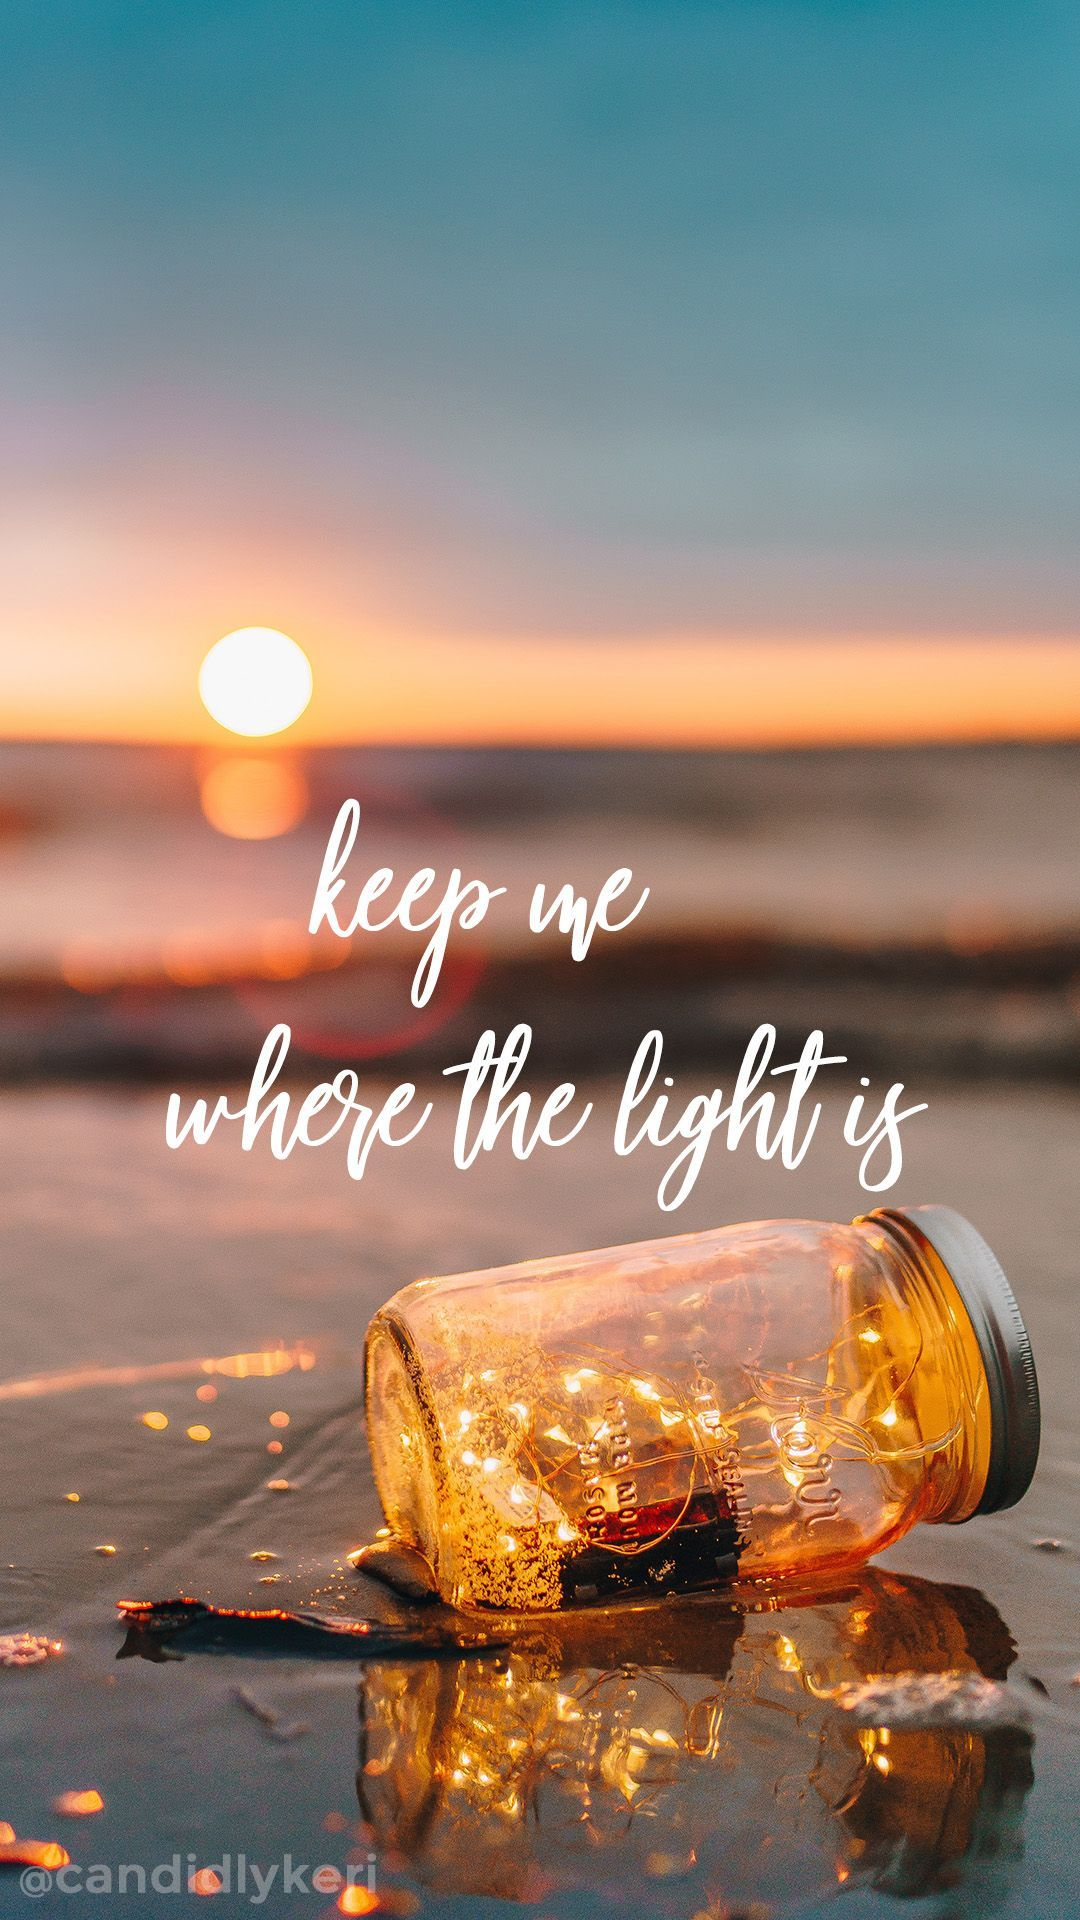 Keep Me Where The Light Is Quote Sunset Mason Jar Wallpaper You Can Download